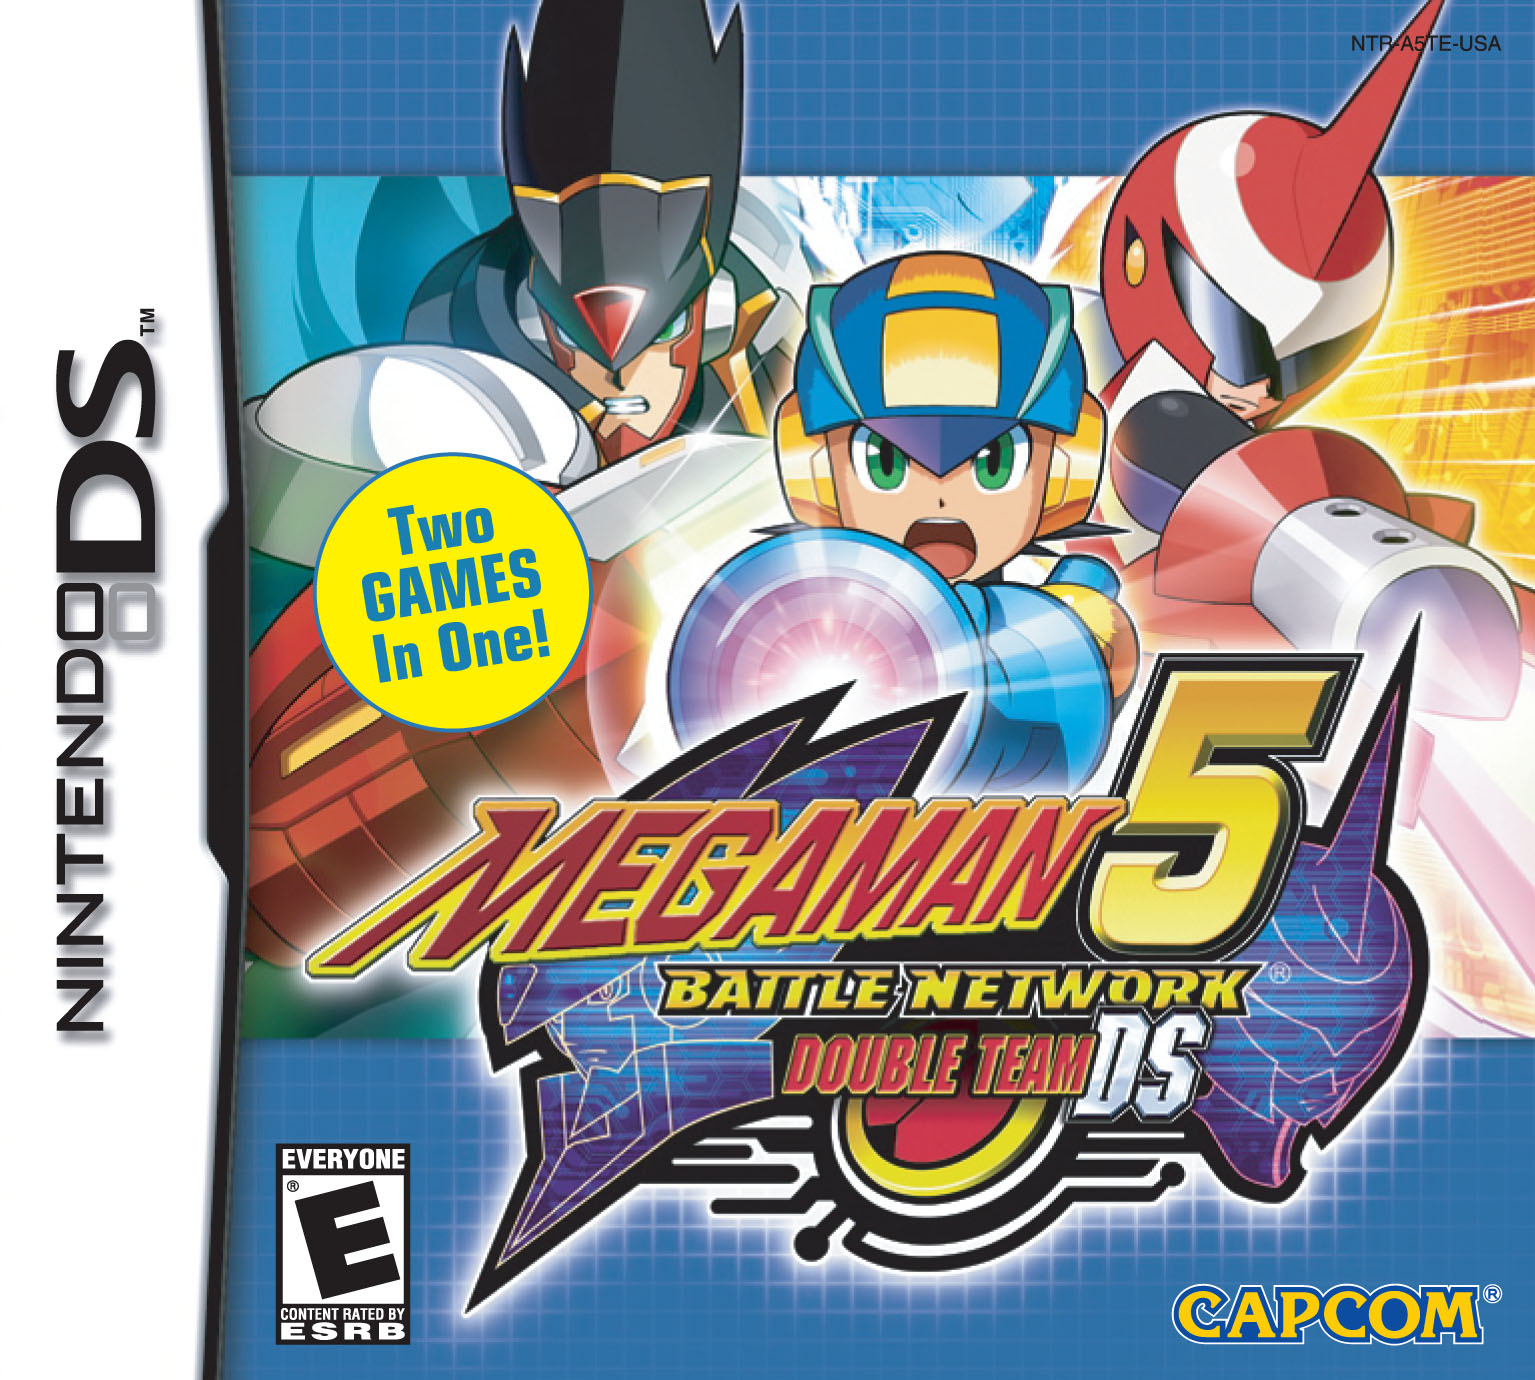 File:Mega-Man-Battle-Network-5-Double-Team-nds.jpg